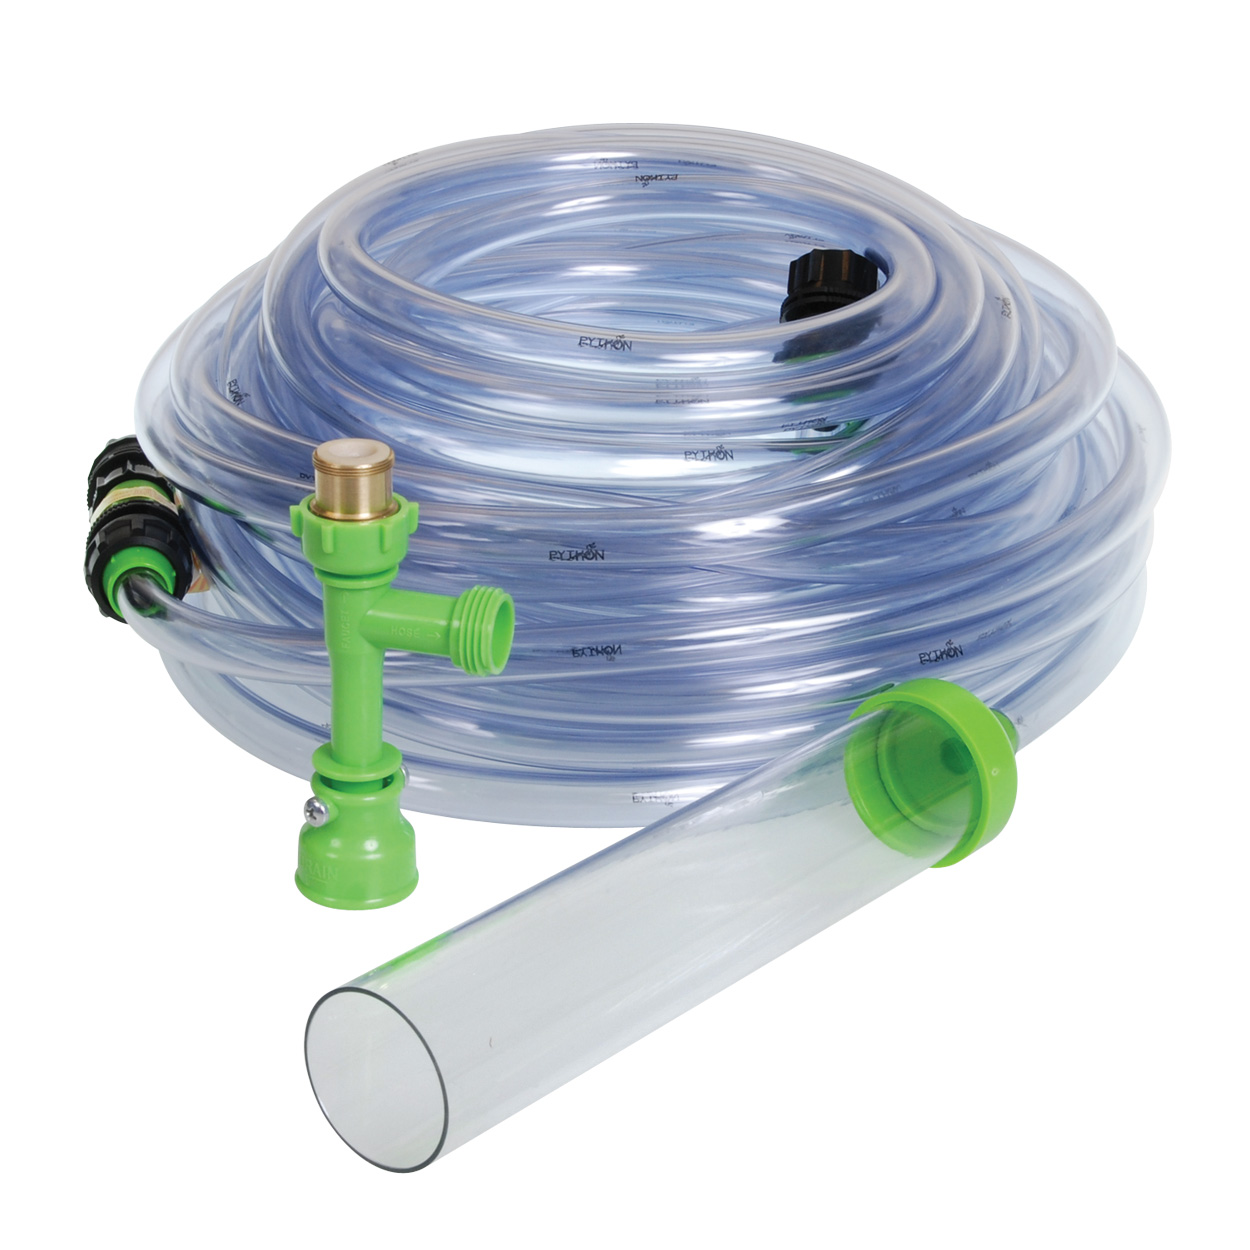 Python No Spill Clean And Fill Aquarium Maintenance System - 75 ft